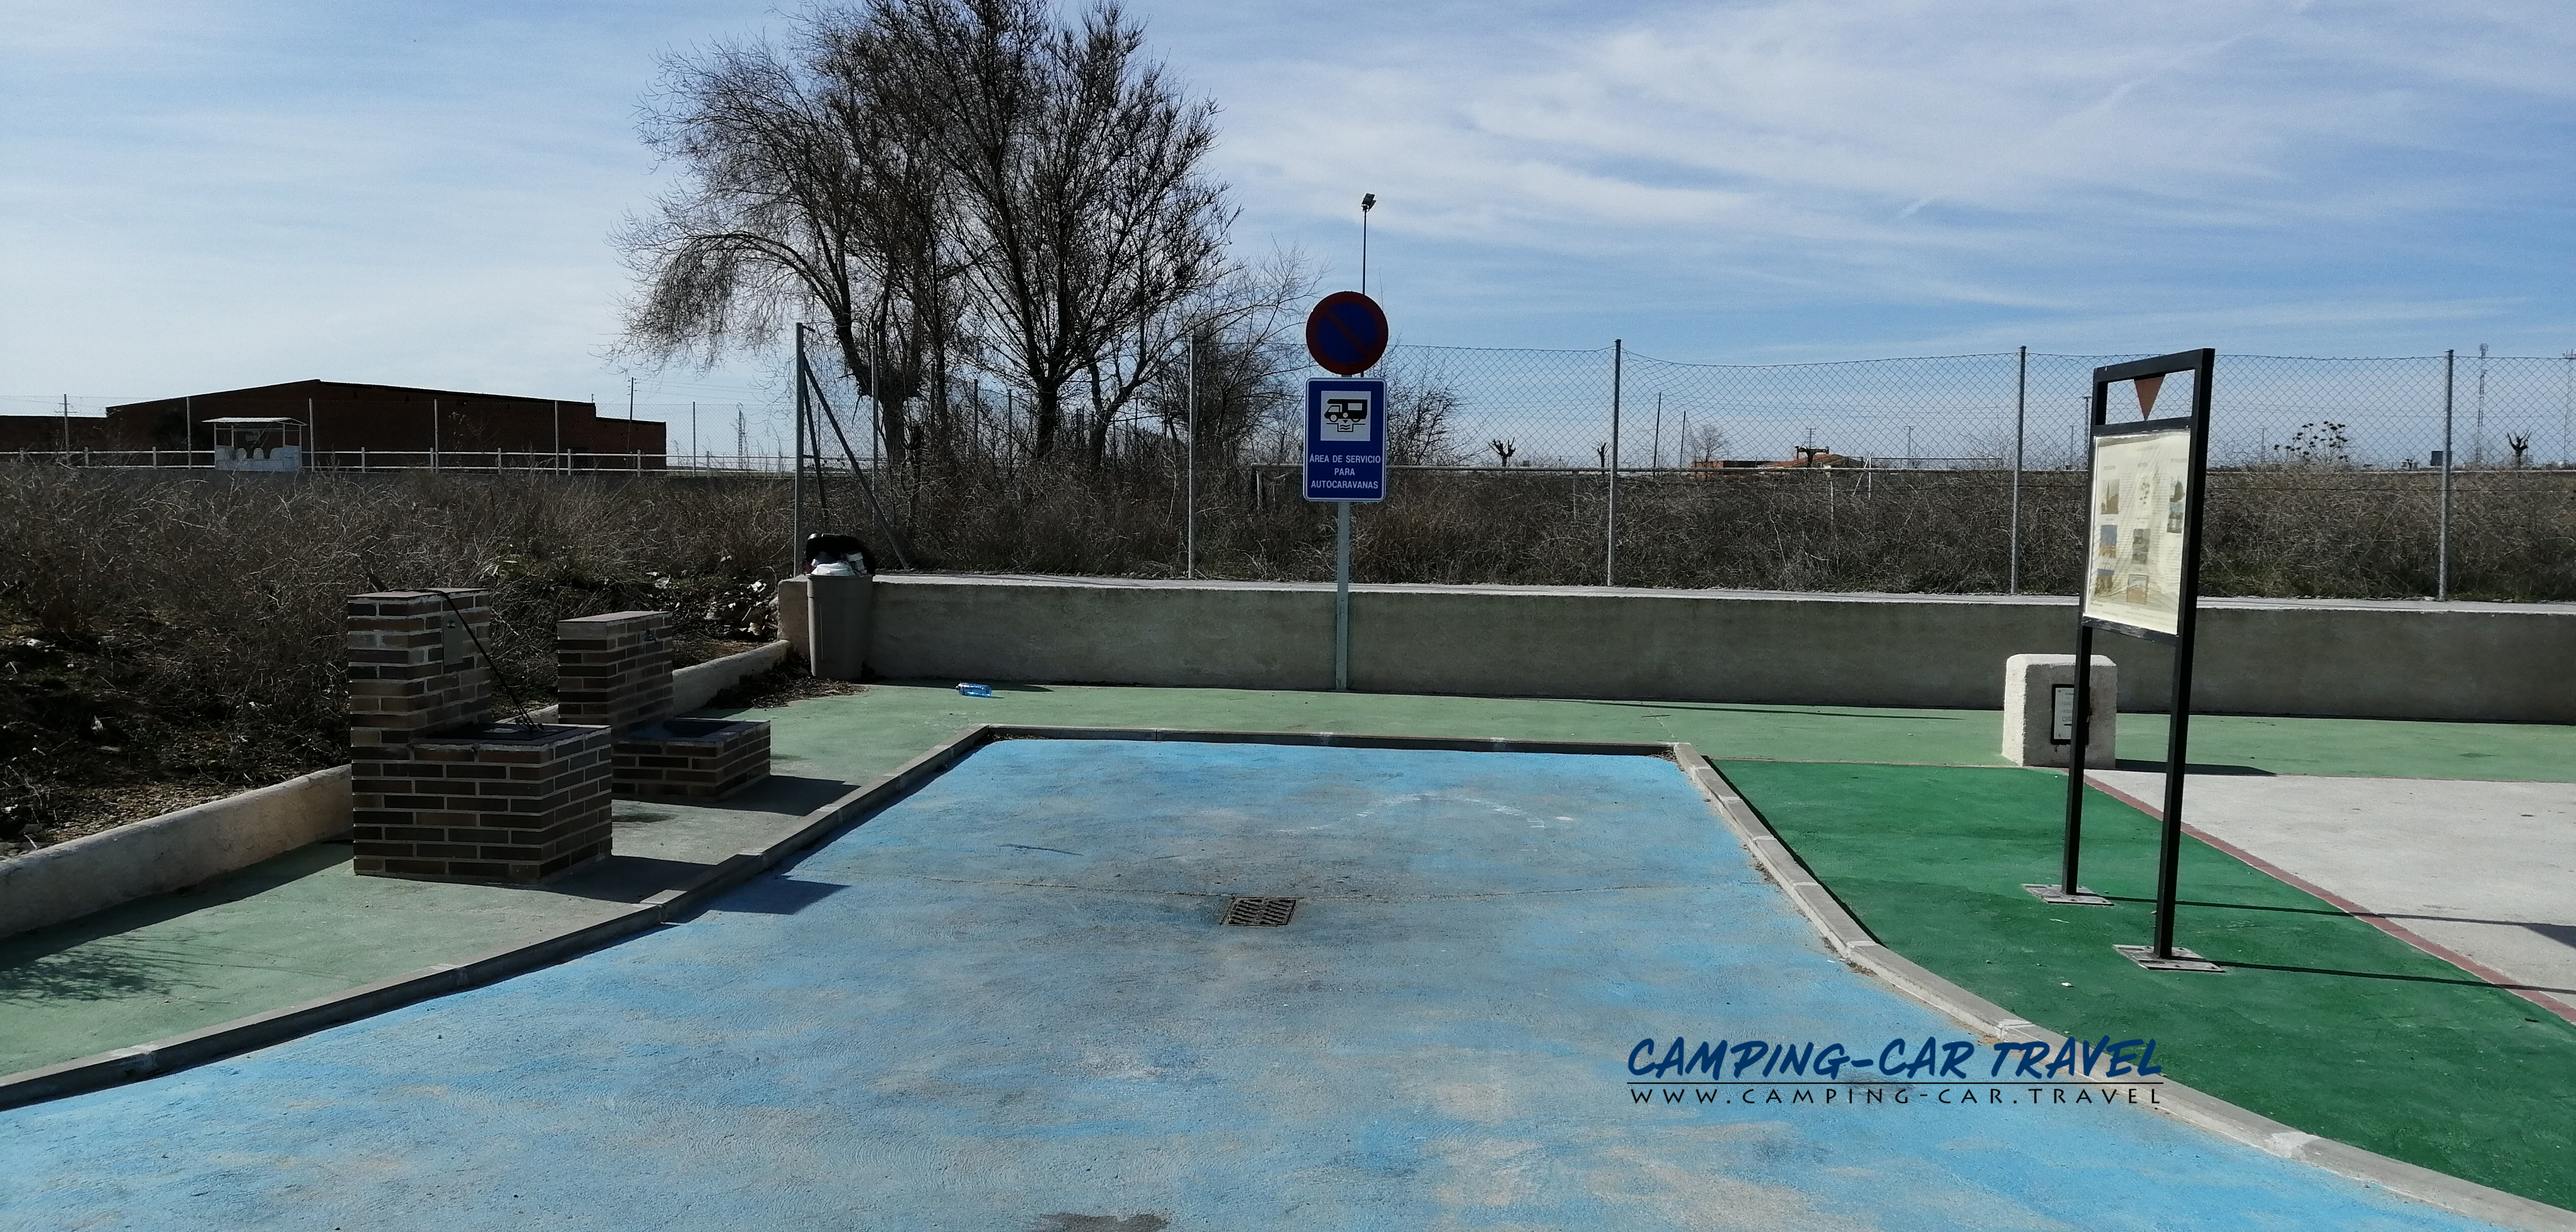 aire services camping car Alaejos Espagne Spain